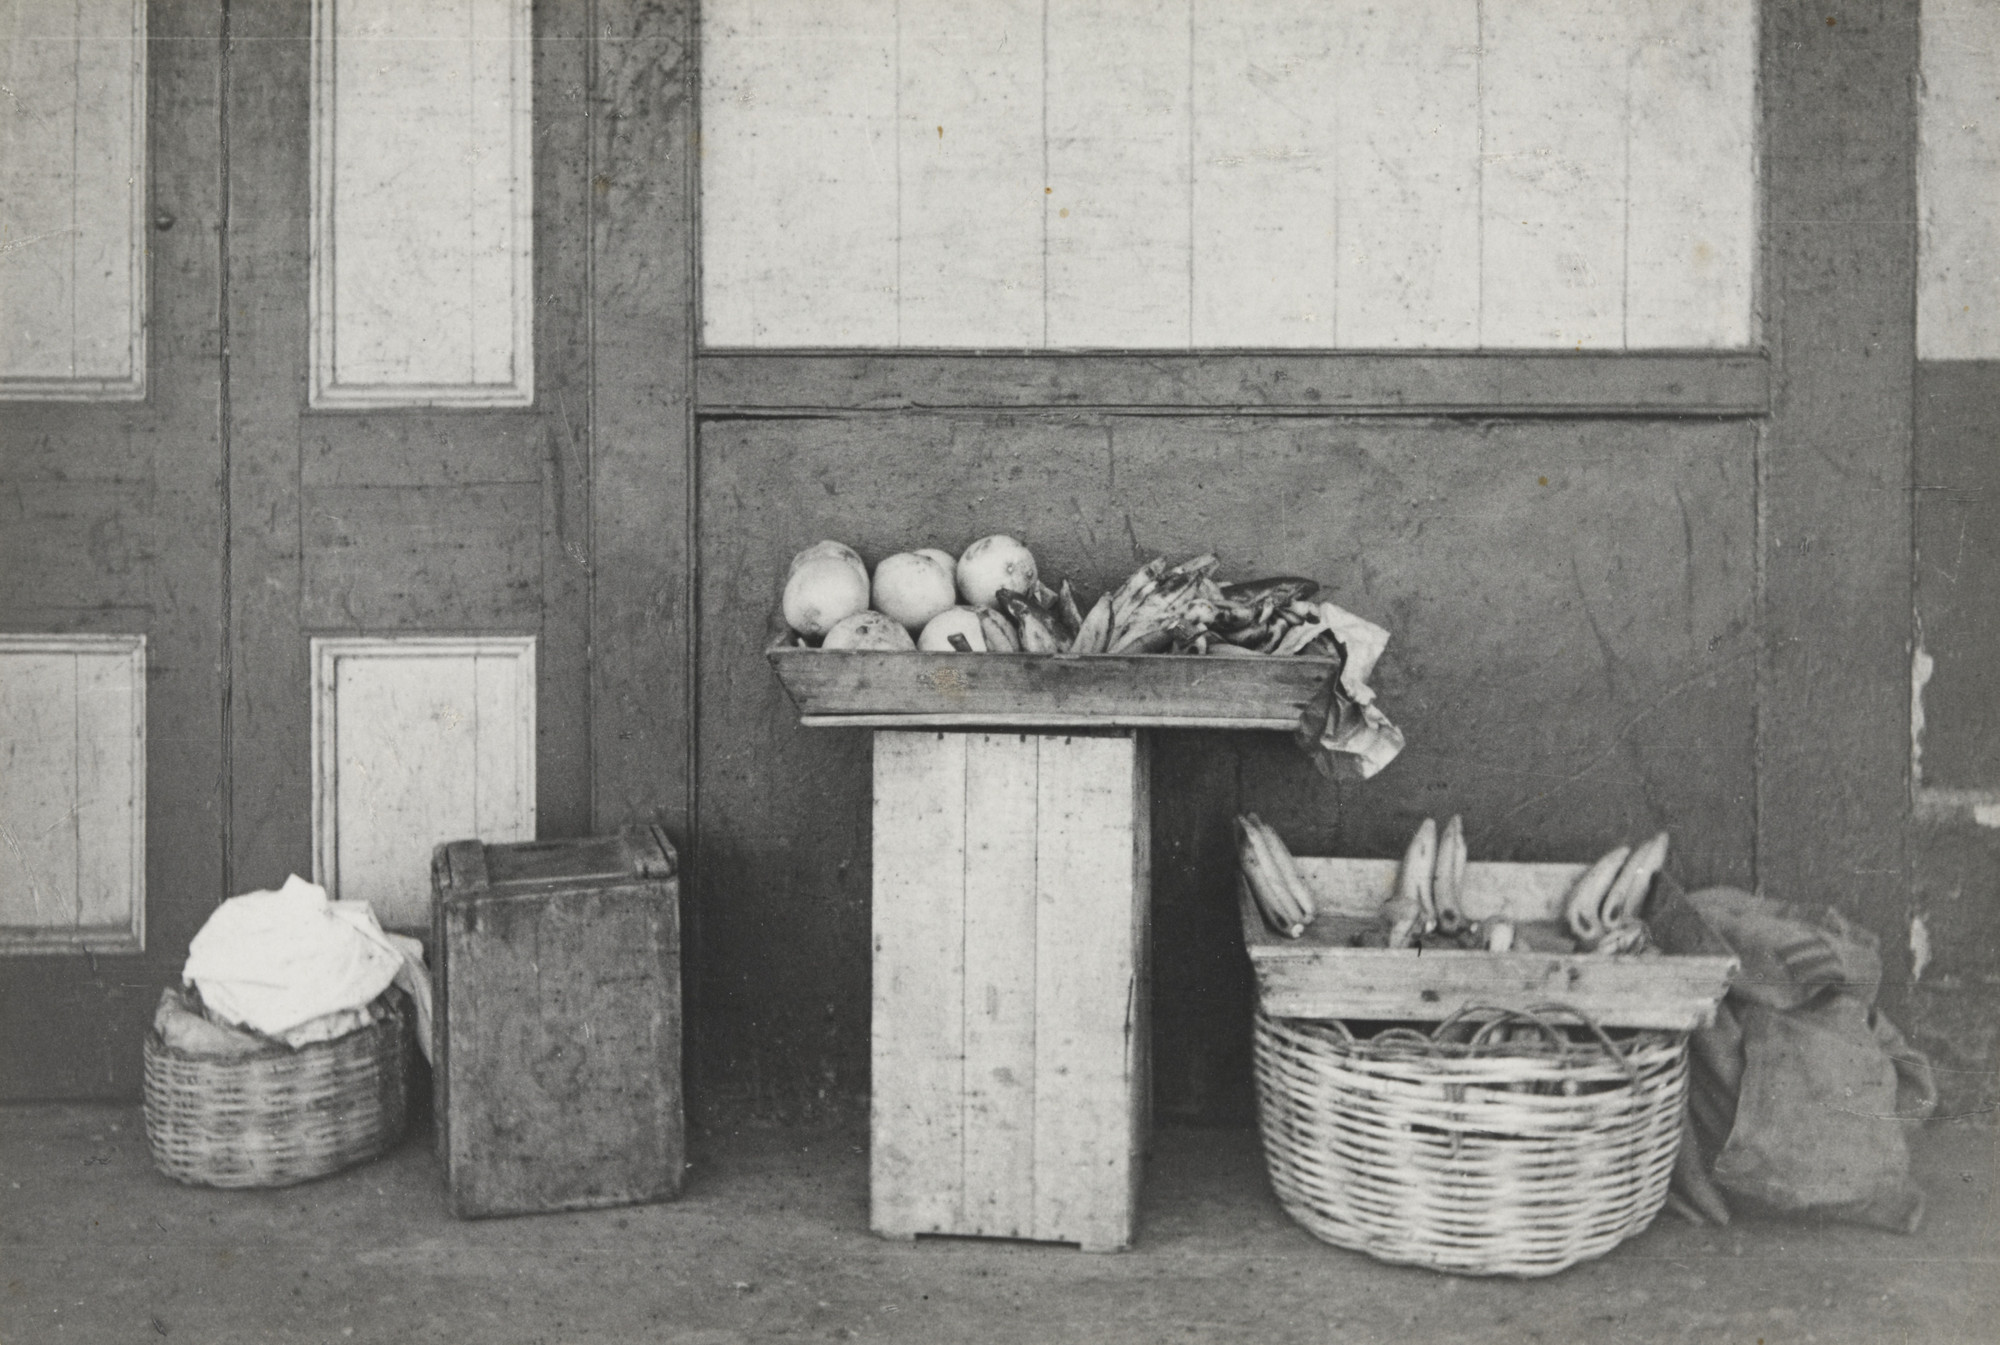 Rudy Burckhardt. Port of Spain, Trinidad. (basket, fruit in wooden boxes). 1942-43